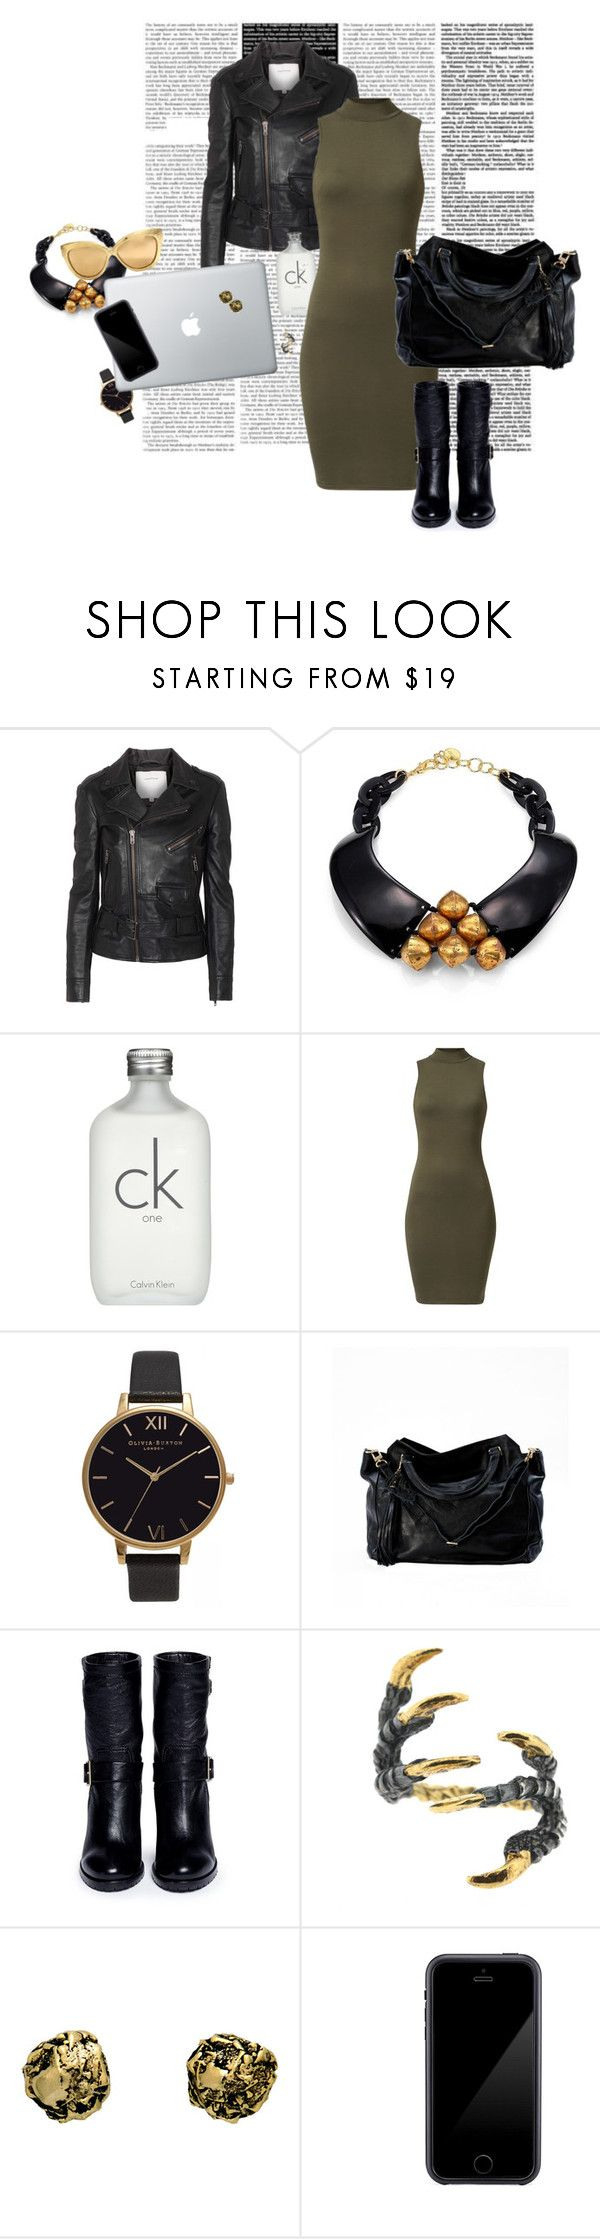 """High neck dress"" by nastiarl ❤ liked on Polyvore featuring Surface To Air, Nest, Calvin Klein, Olivia Burton, Jimmy Choo, Tessa Metcalfe, Kamryn Dame, Squair, Linda Farrow and gold"